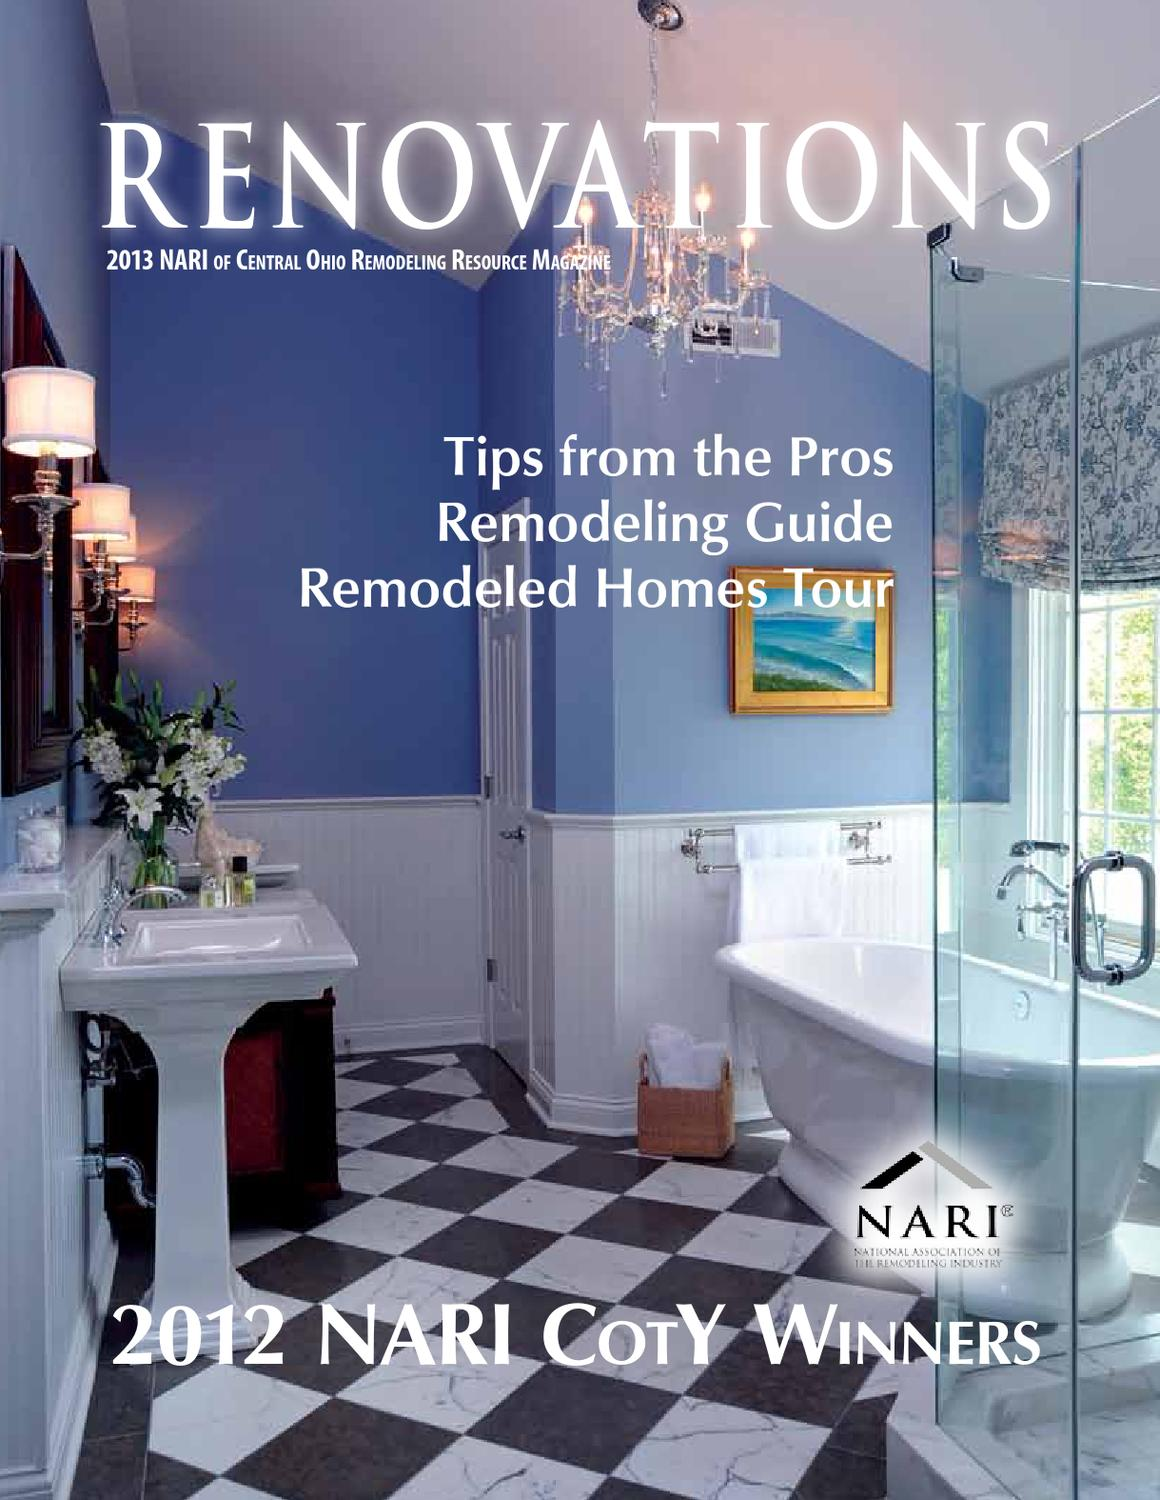 Renovations February 2013 by The Columbus Dispatch - issuu